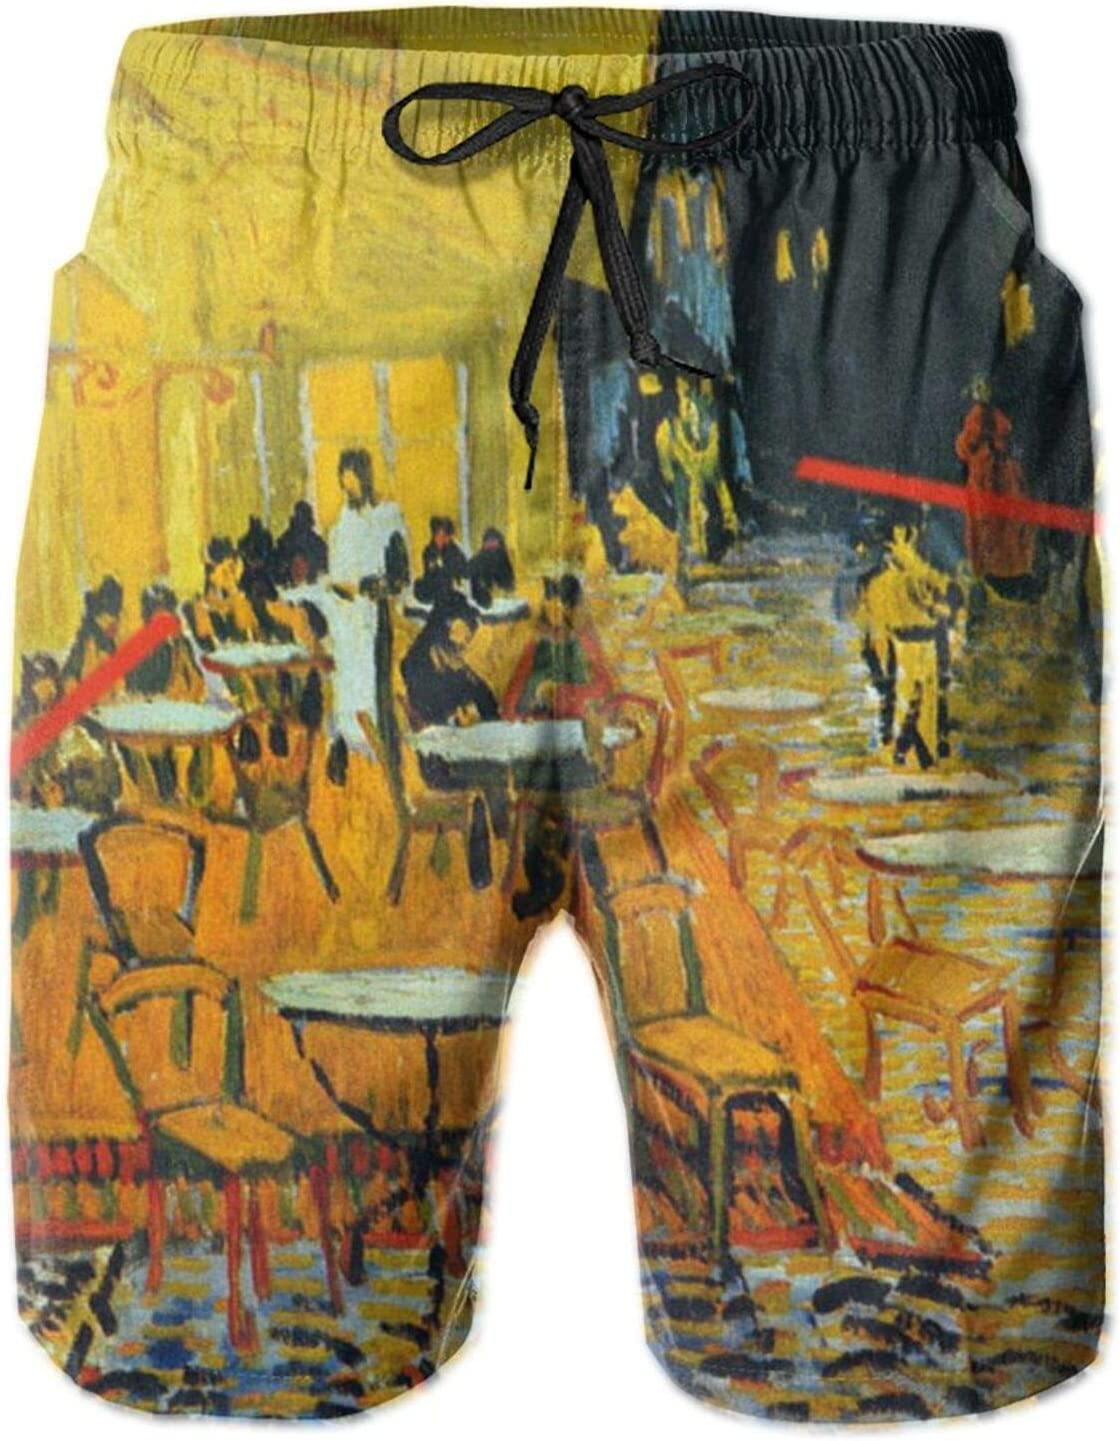 SWEET TANG Mens Boys Comfy Short Swim Trunks Printed Beach Shorts Quick Dry Boardshorts Swim Trunks with Mesh Lining for Beach Sports Running, Colorful Vincent Cafe Painting by Van Gogh Yellow Oil